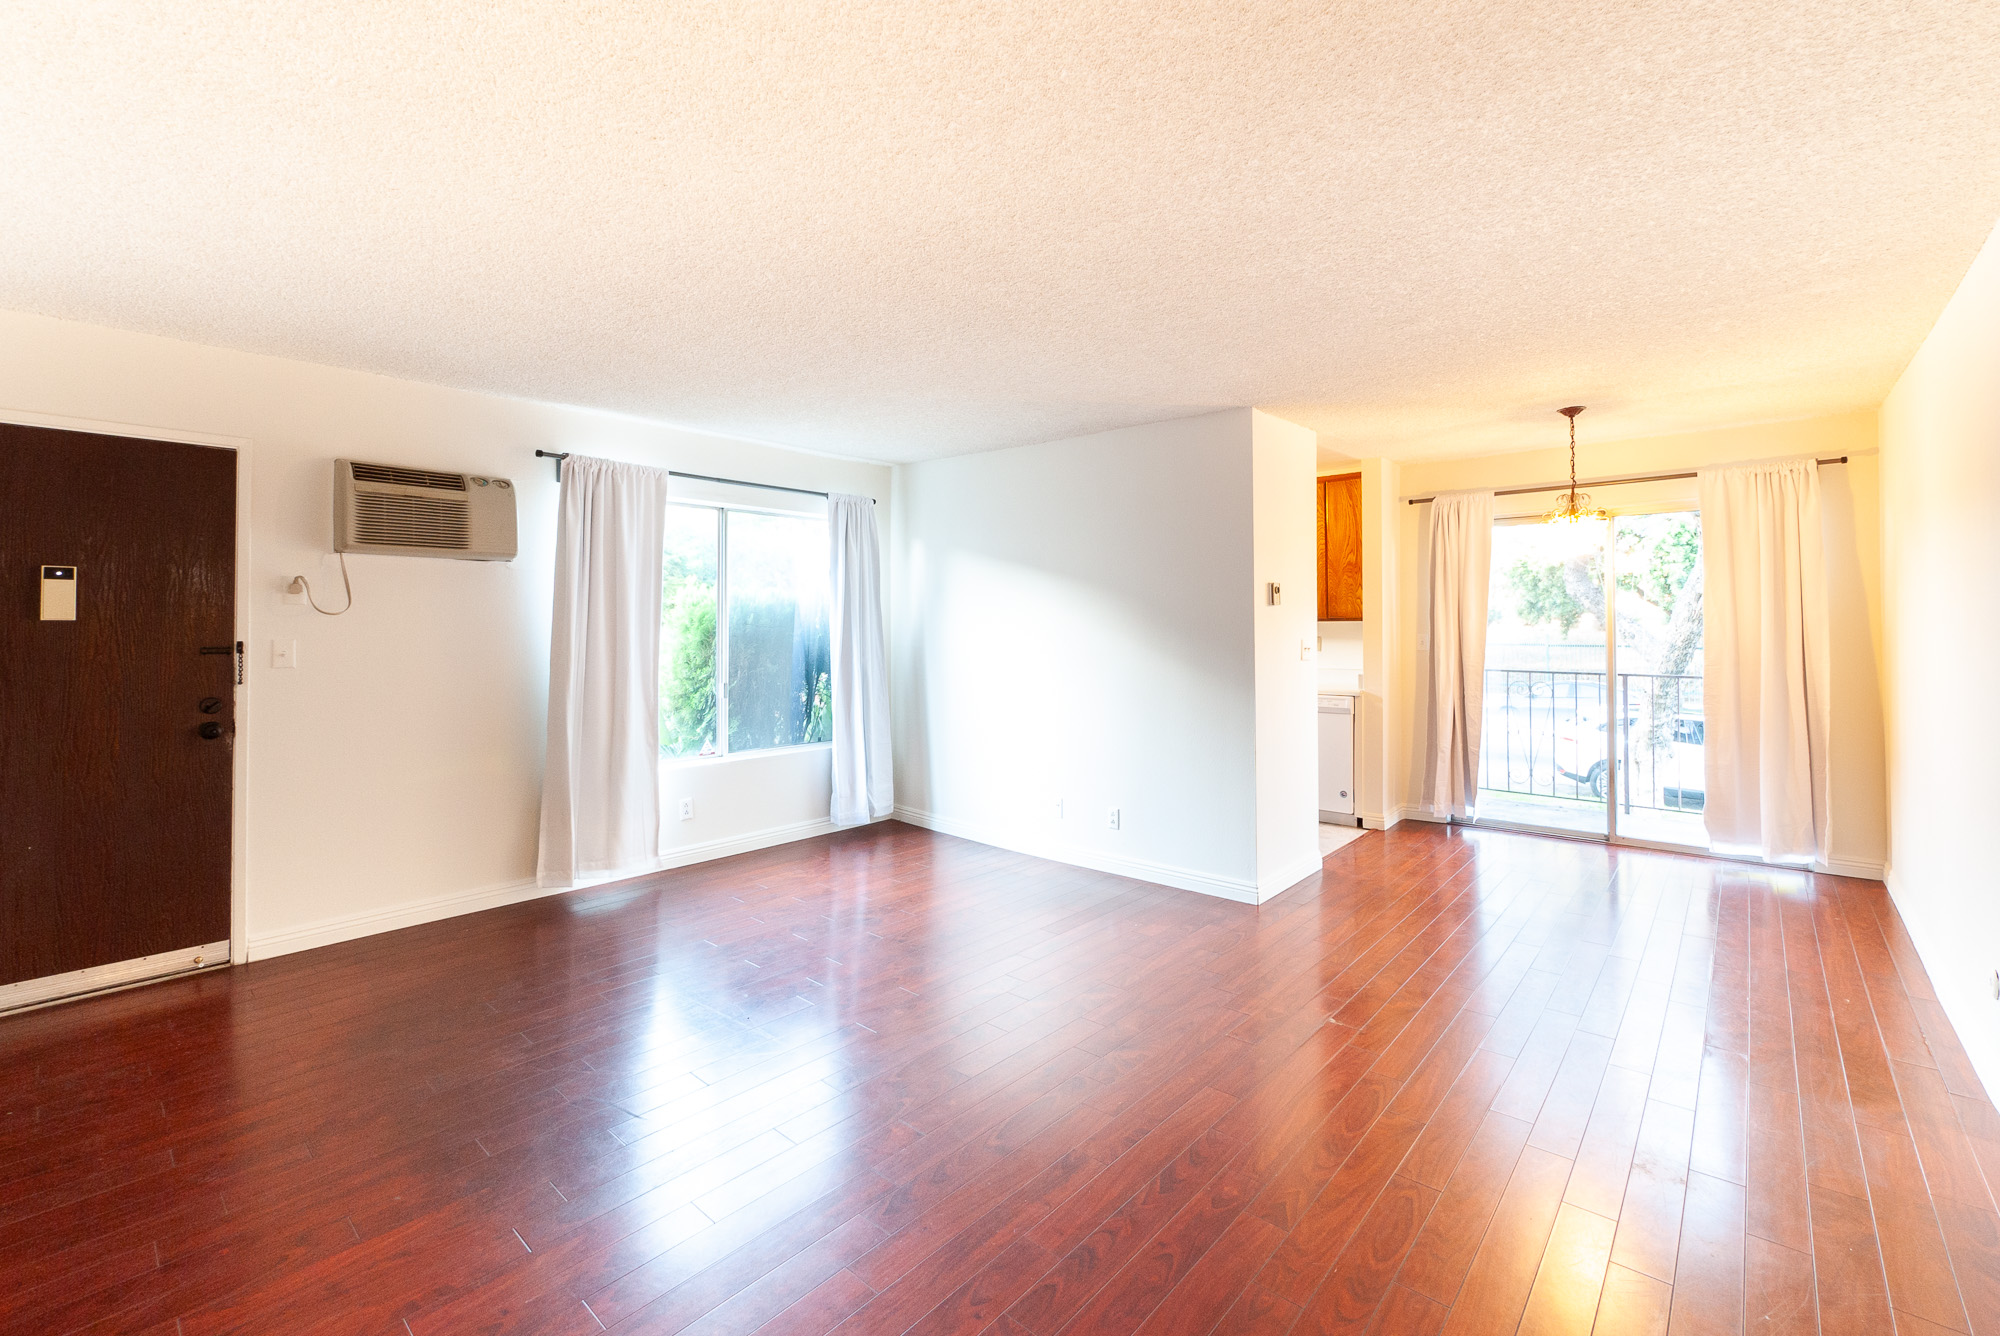 Bright + Spacious 1 Bed With Balcony! Across from Rowena Reservoir!   Where Silver Lake Meets Los Feliz   Parking plus Laundry on site!